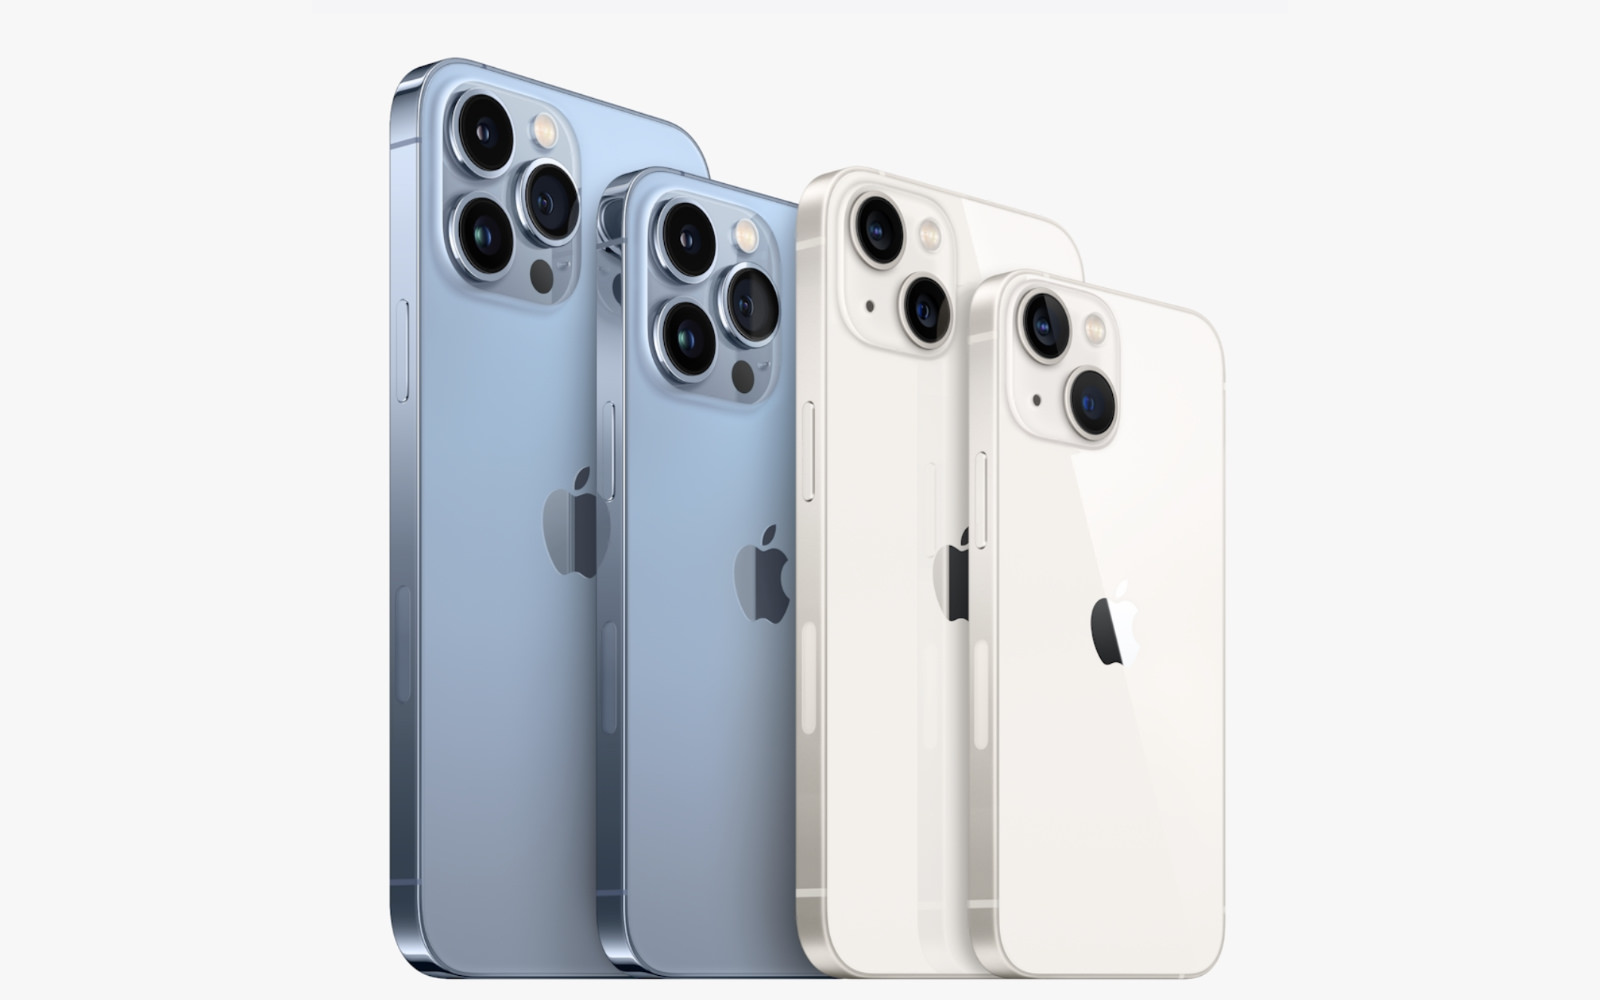 Iphone13 all models